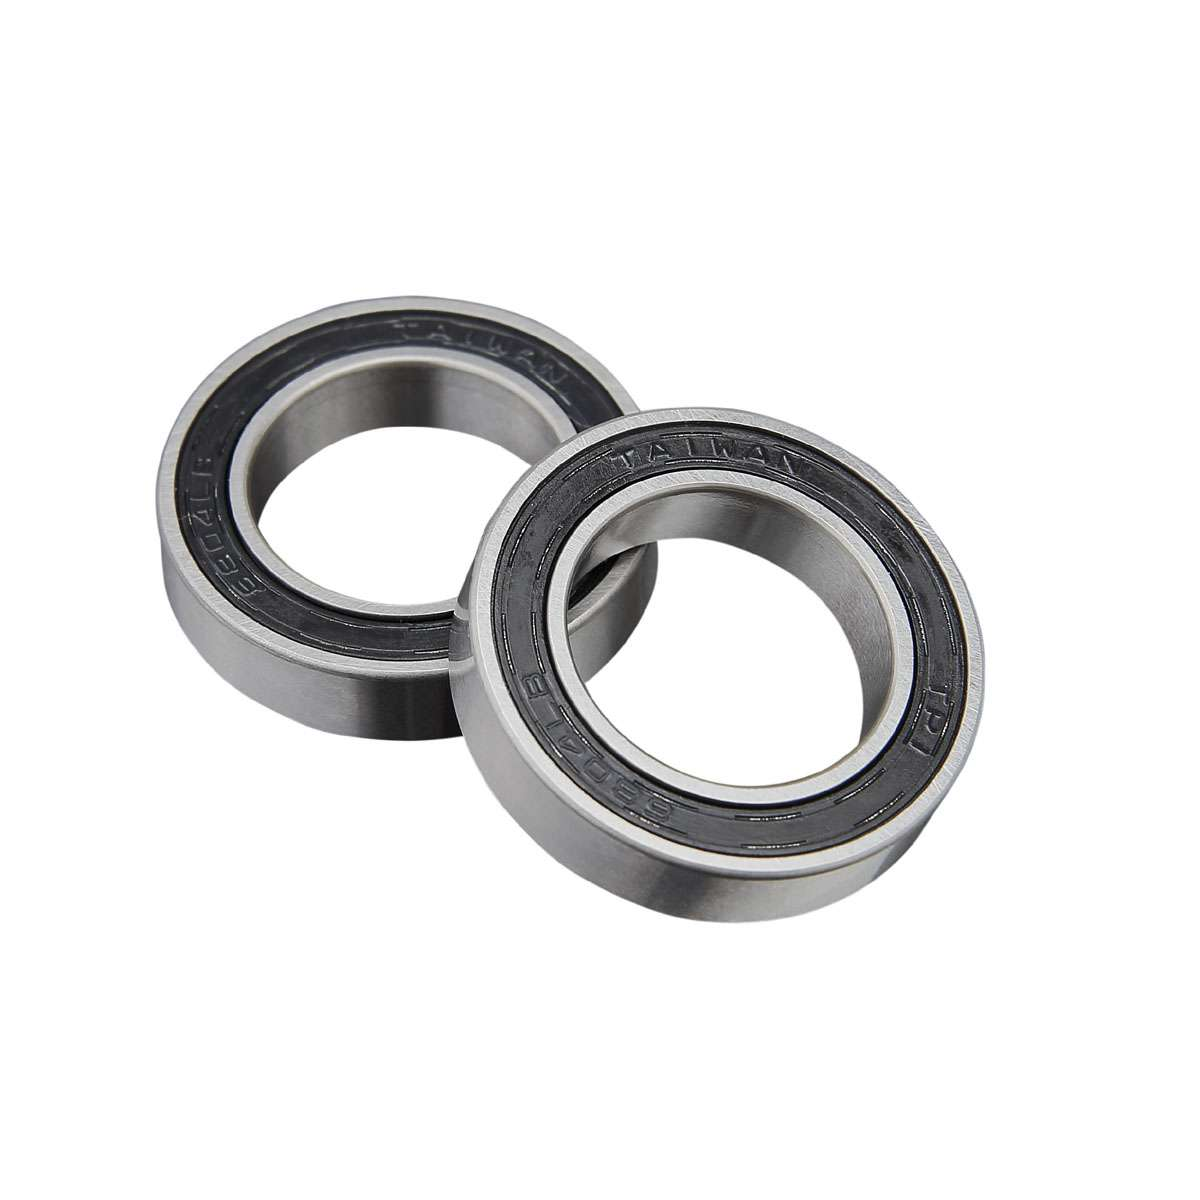 Spank OOZY/SPIKE Front Bicycle Hub Bearing Kit - C04KT40001AMSPK